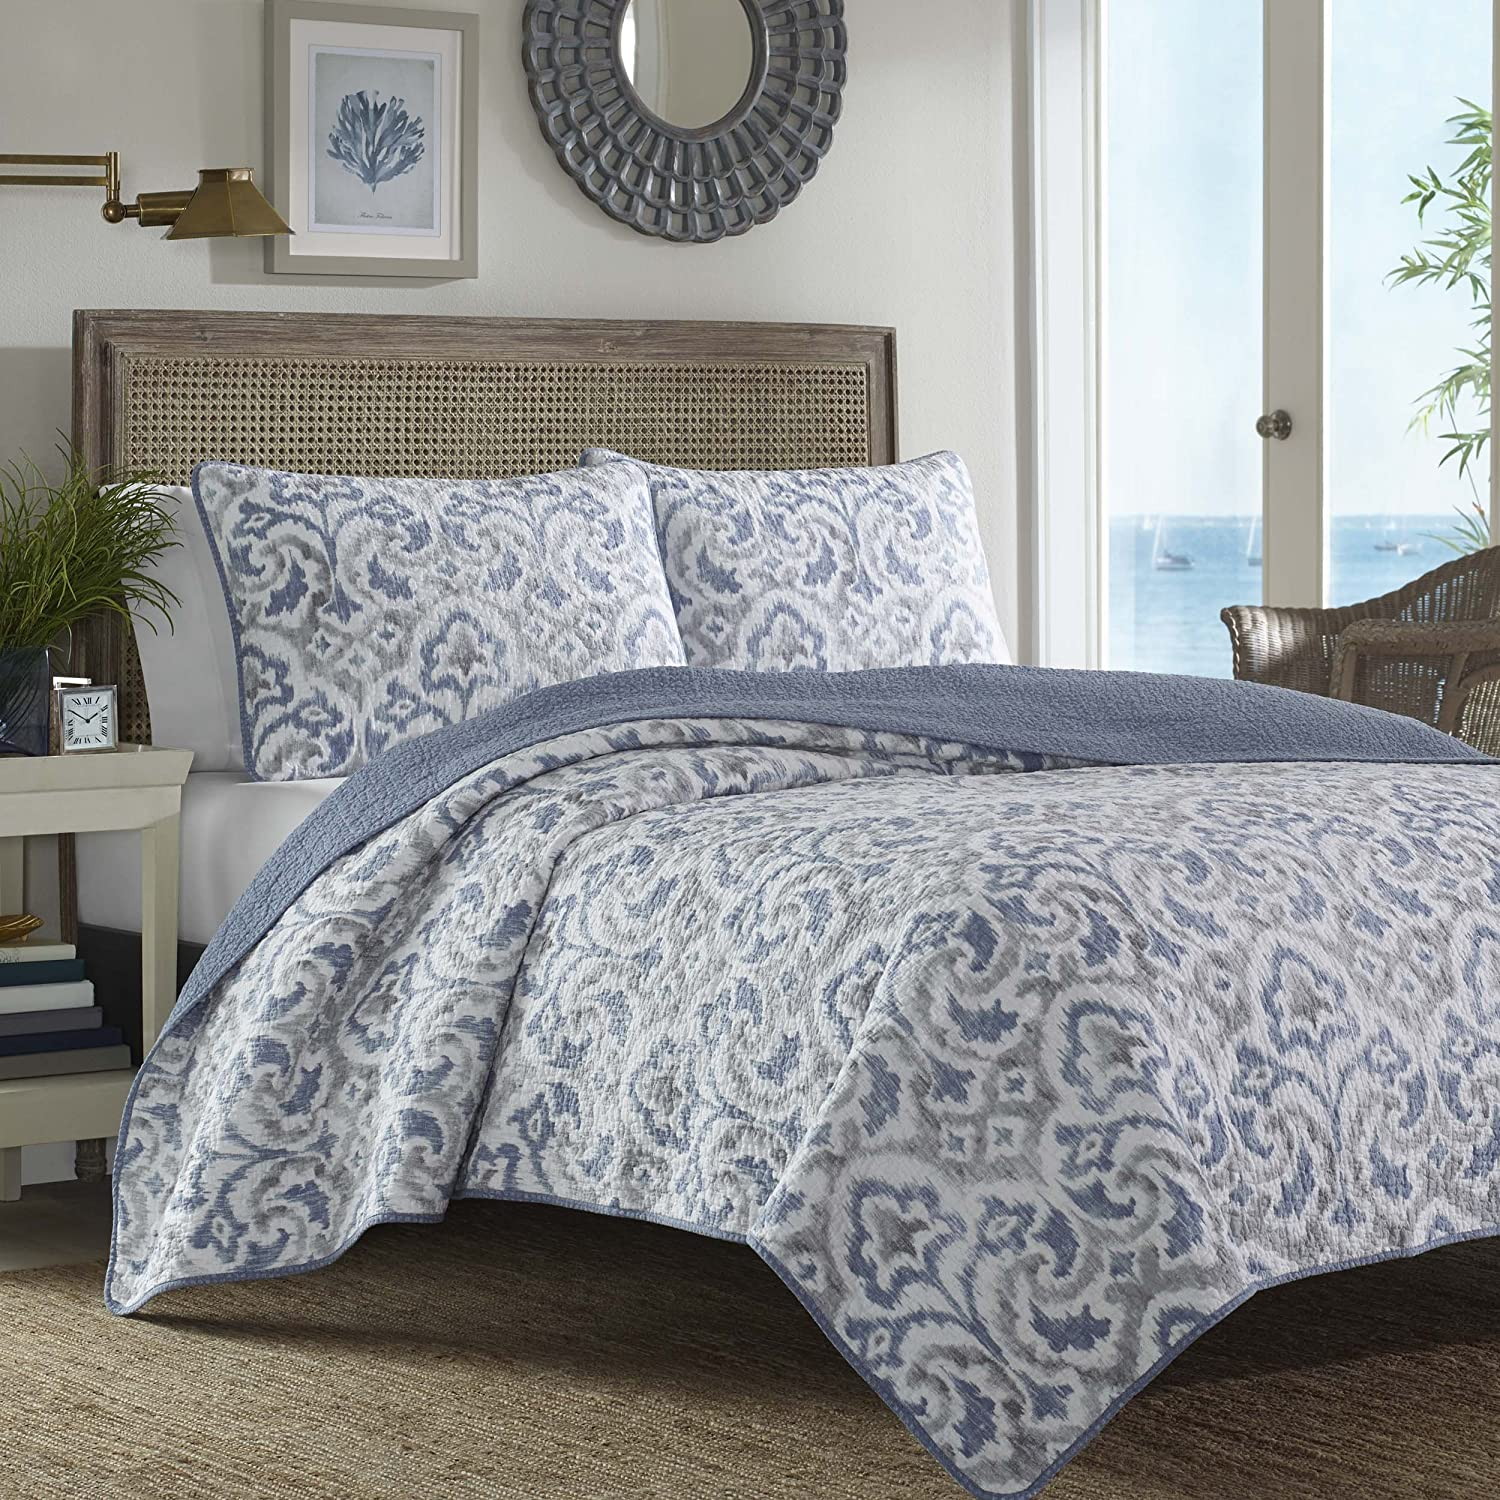 Tommy Bahama Cape Verde Smoke Quilt Set, Full/Queen, Smoke